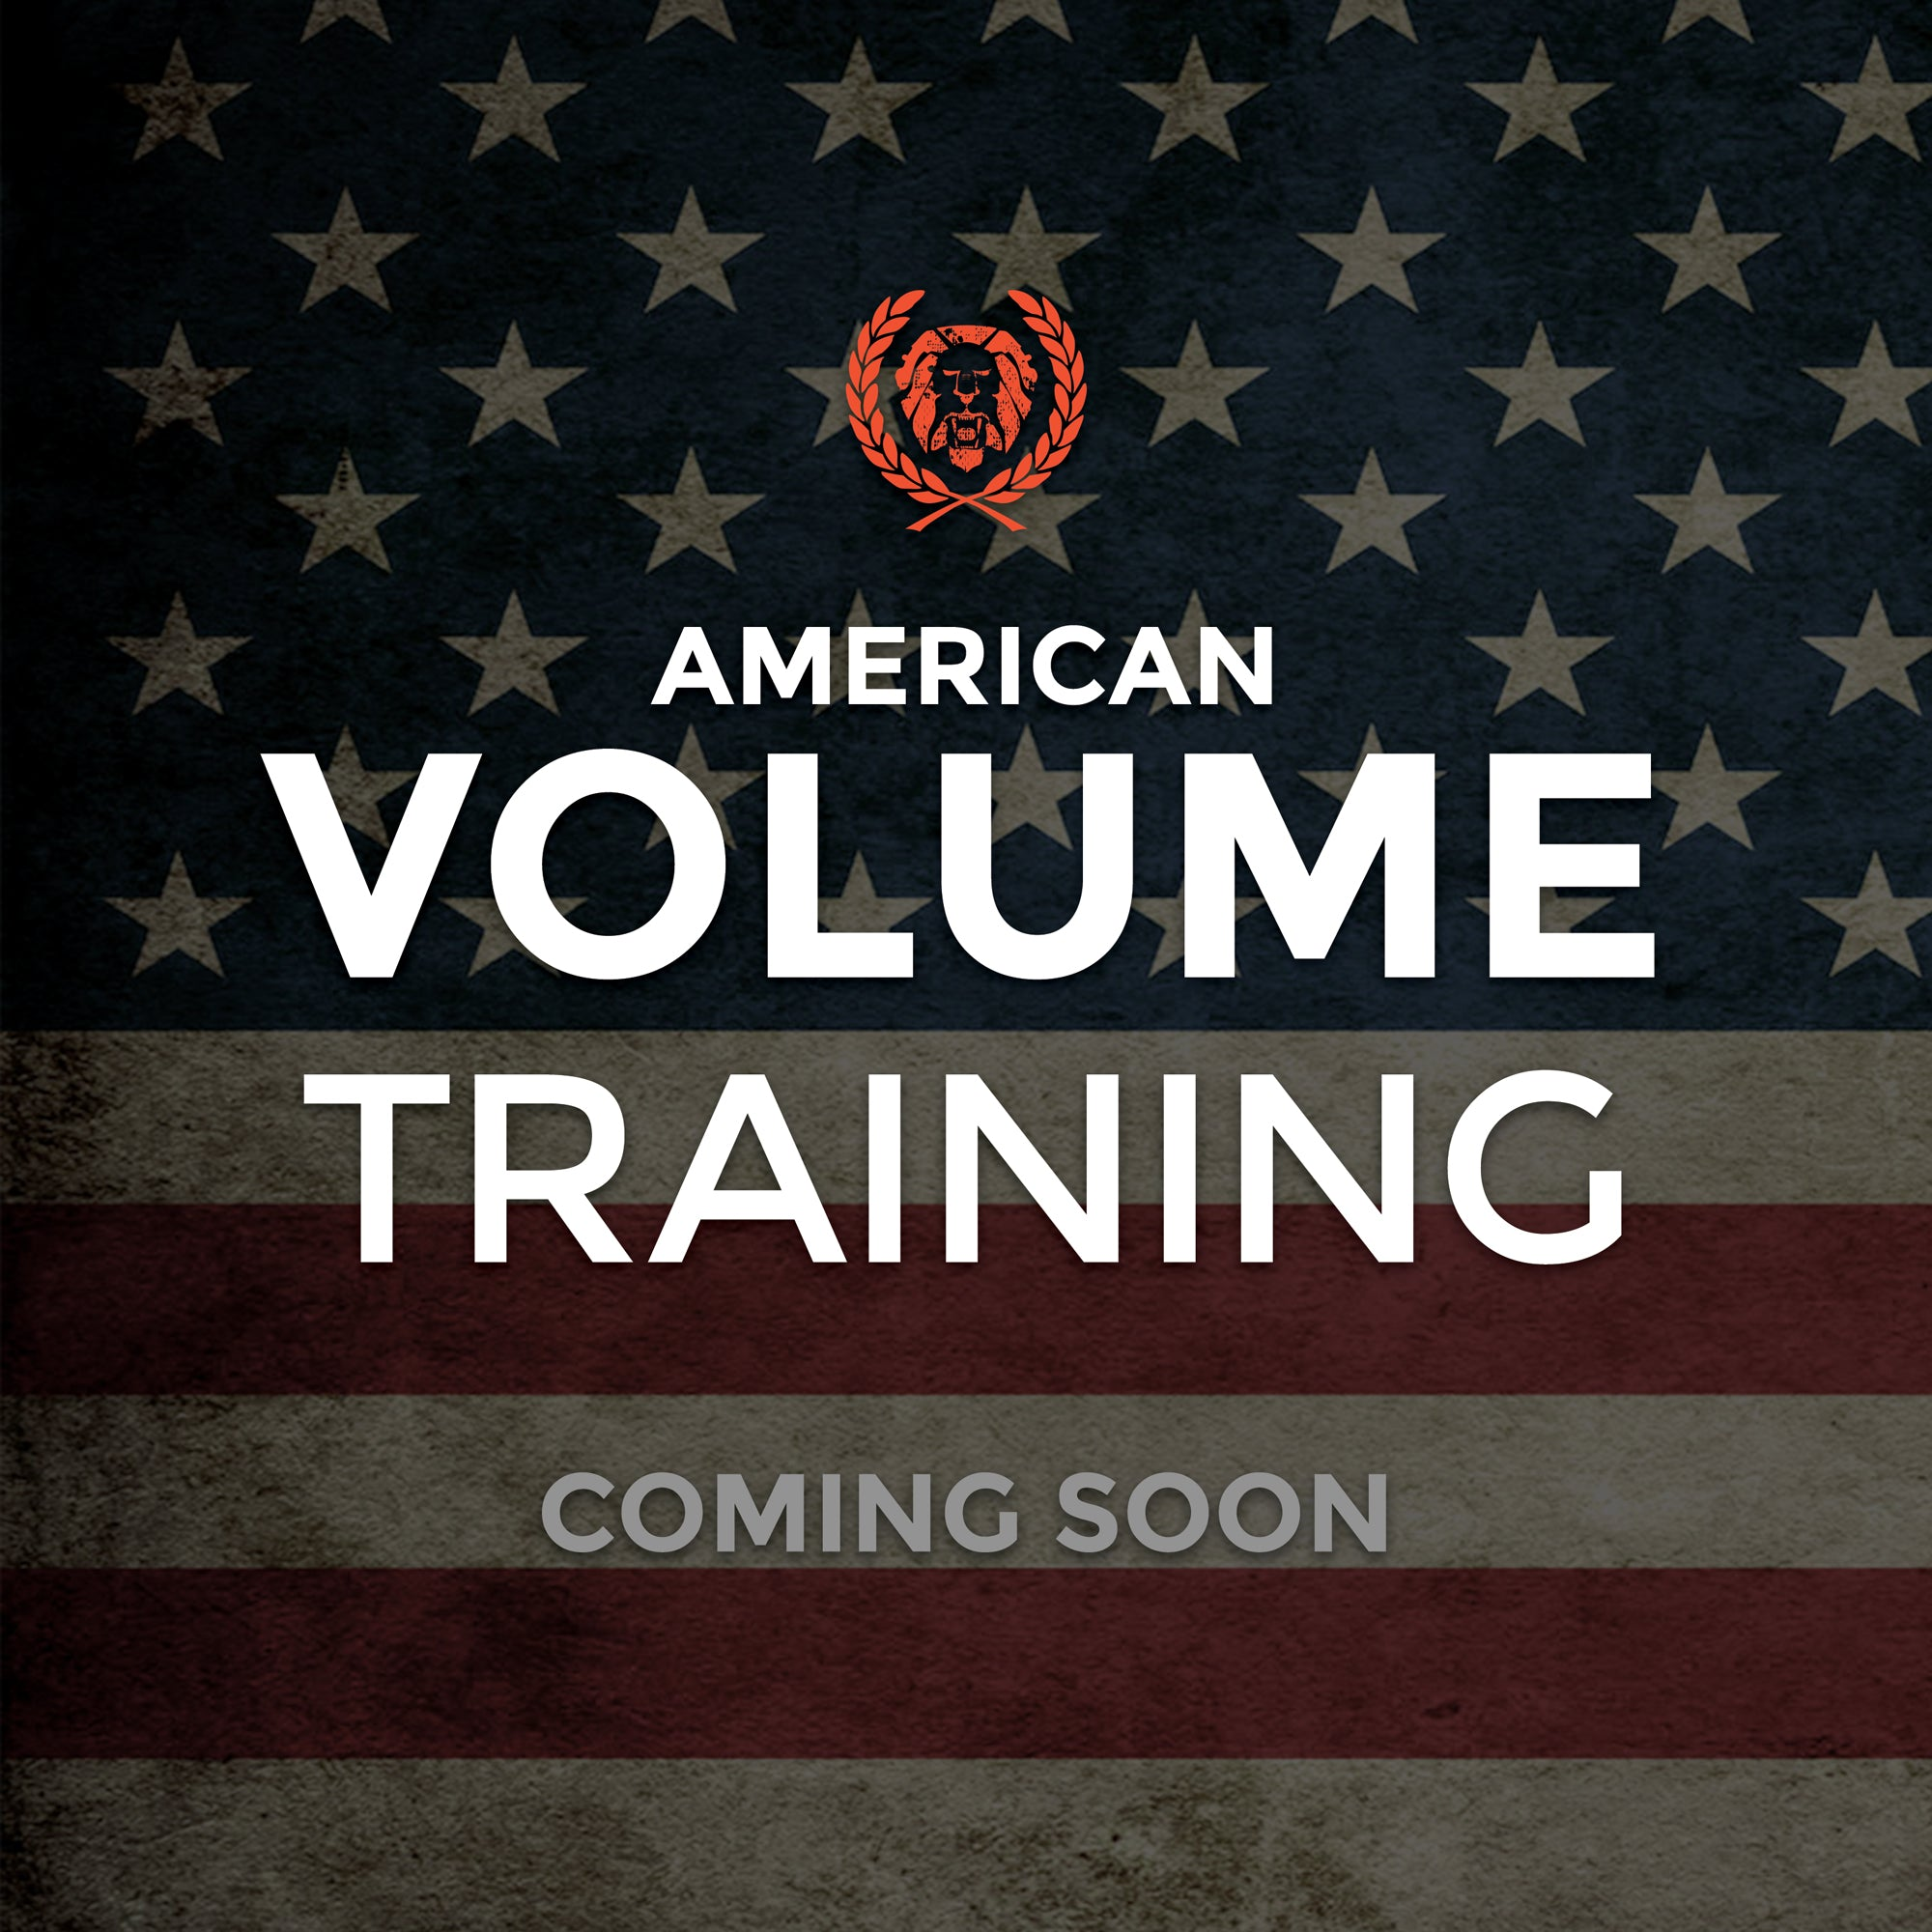 American Volume Training